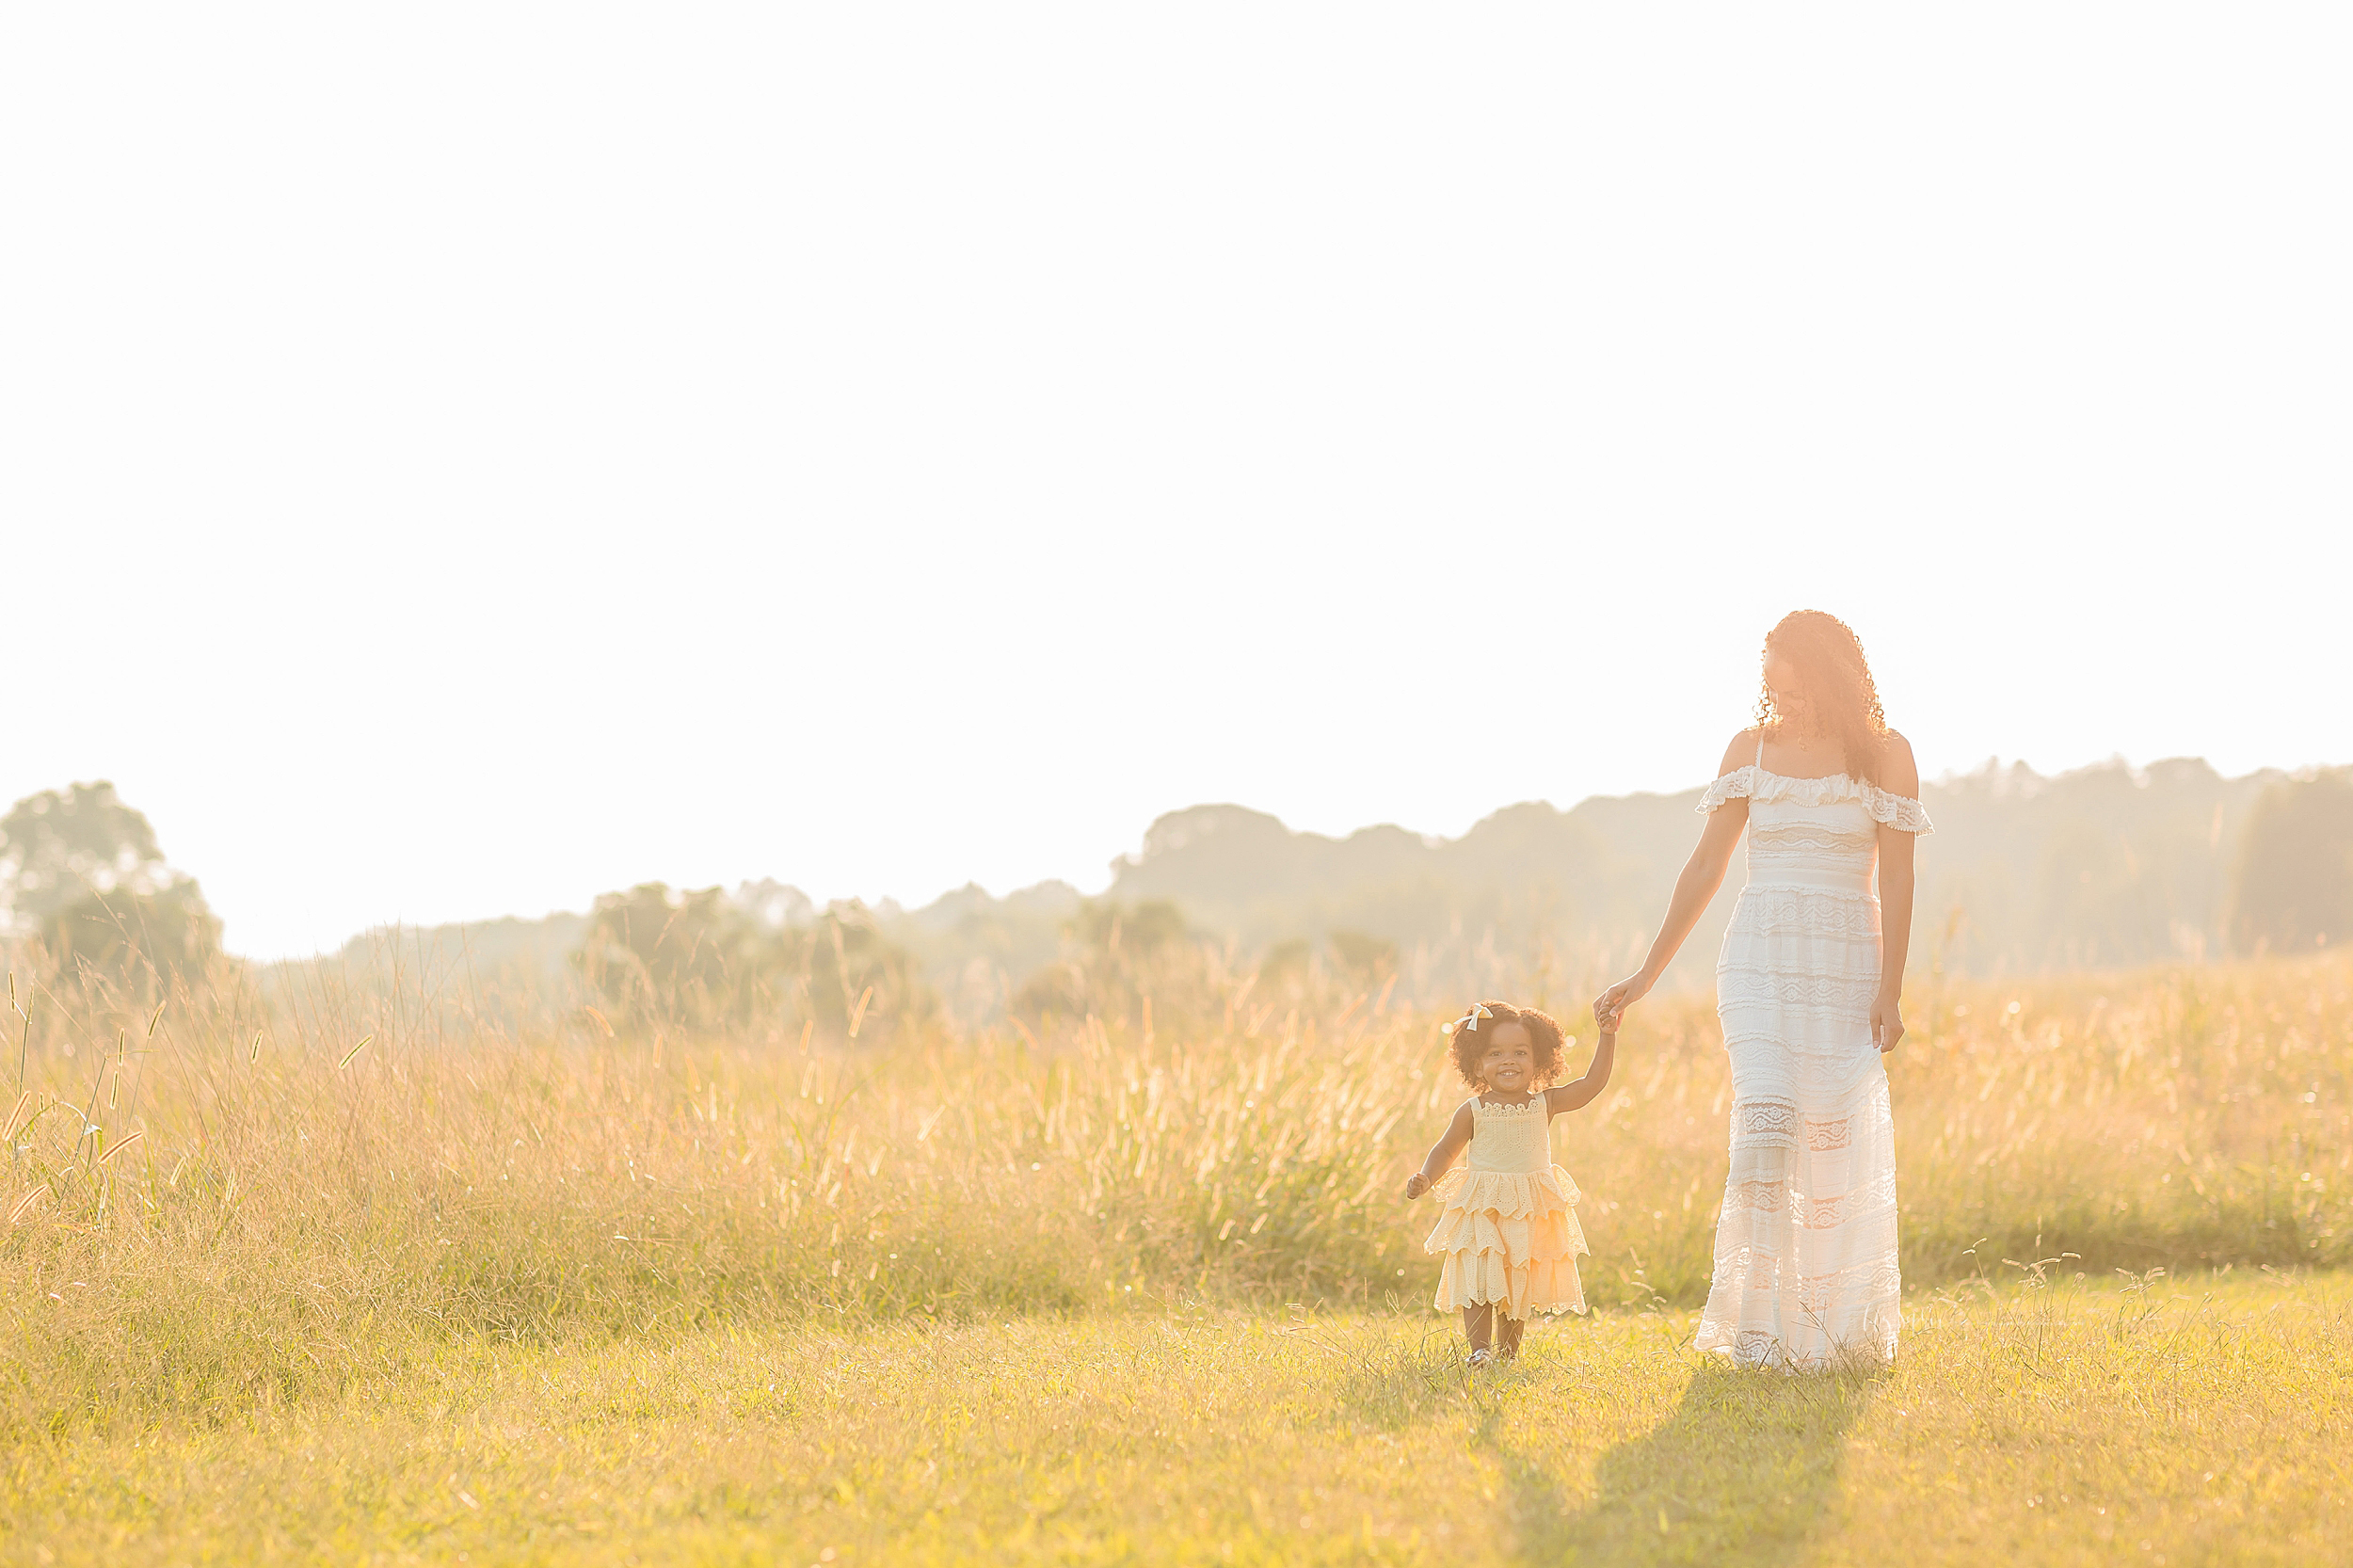 atlanta-midtown-brookhaven-ashford-dunwoody-decatur-lily-sophia-photography-outdoor-sunset-field-mountain-family-photographer-toddler-girl_0395.jpg